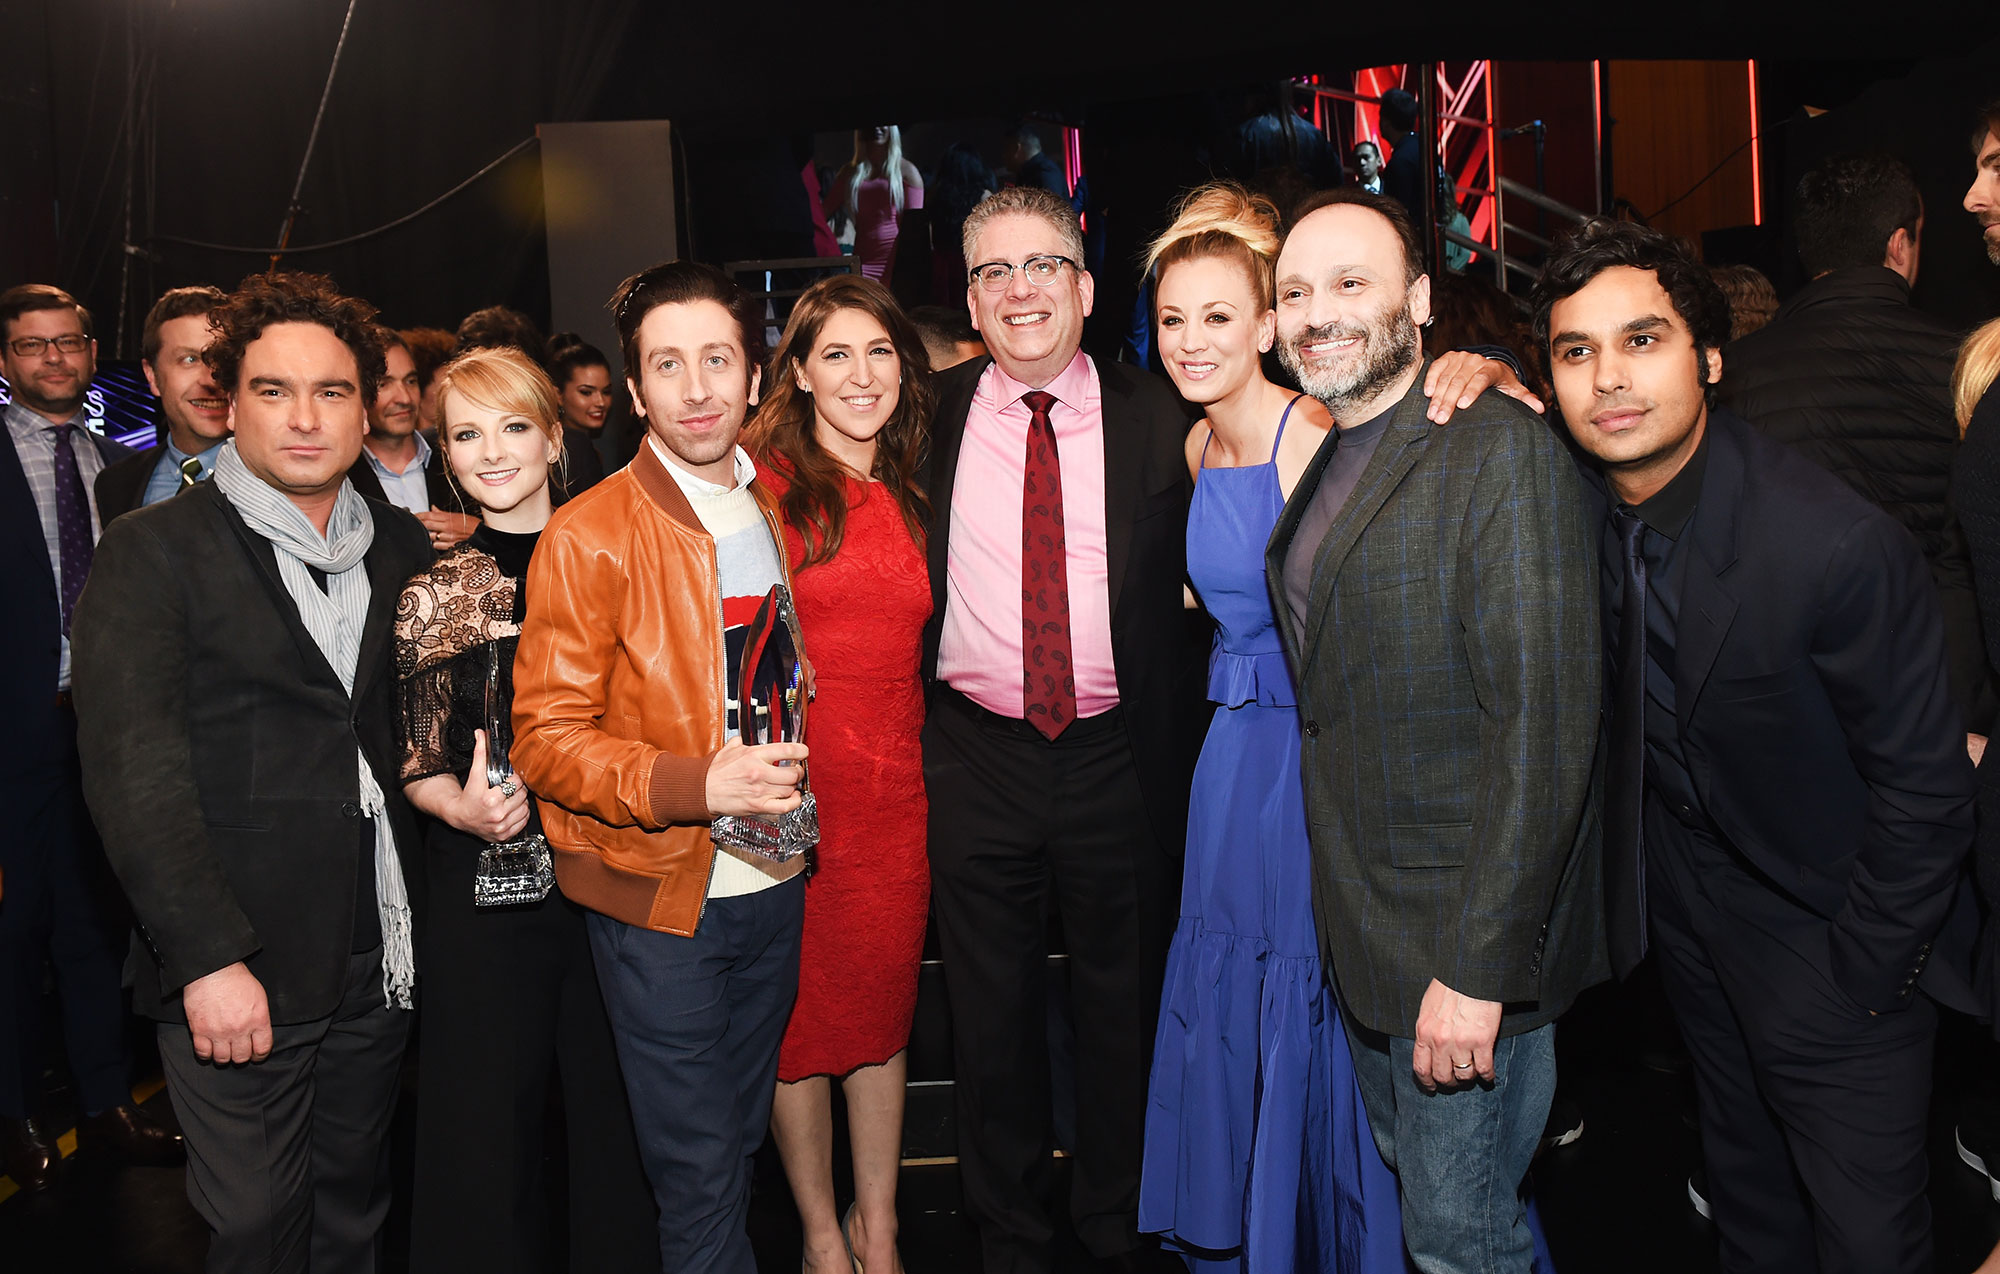 big bang theory - (L-R) Actor Johnny Galecki, actress Melissa Rauch, actor Simon Helberg, actress Mayim Bialik, writer/producer Bill Prady, actress Kaley Cuoco, writer/producer Steven Molaro, and actor Kunal Nayyar, recipients of the Favorite TV Show and Favorite Network TV Comedy awards for 'The Big Bang Theory,' pose backstage at the People's Choice Awards 2017 at Microsoft Theater on January 18, 2017 in Los Angeles, California. (Photo by Emma McIntyre/Getty Images for People's Choice Awards)